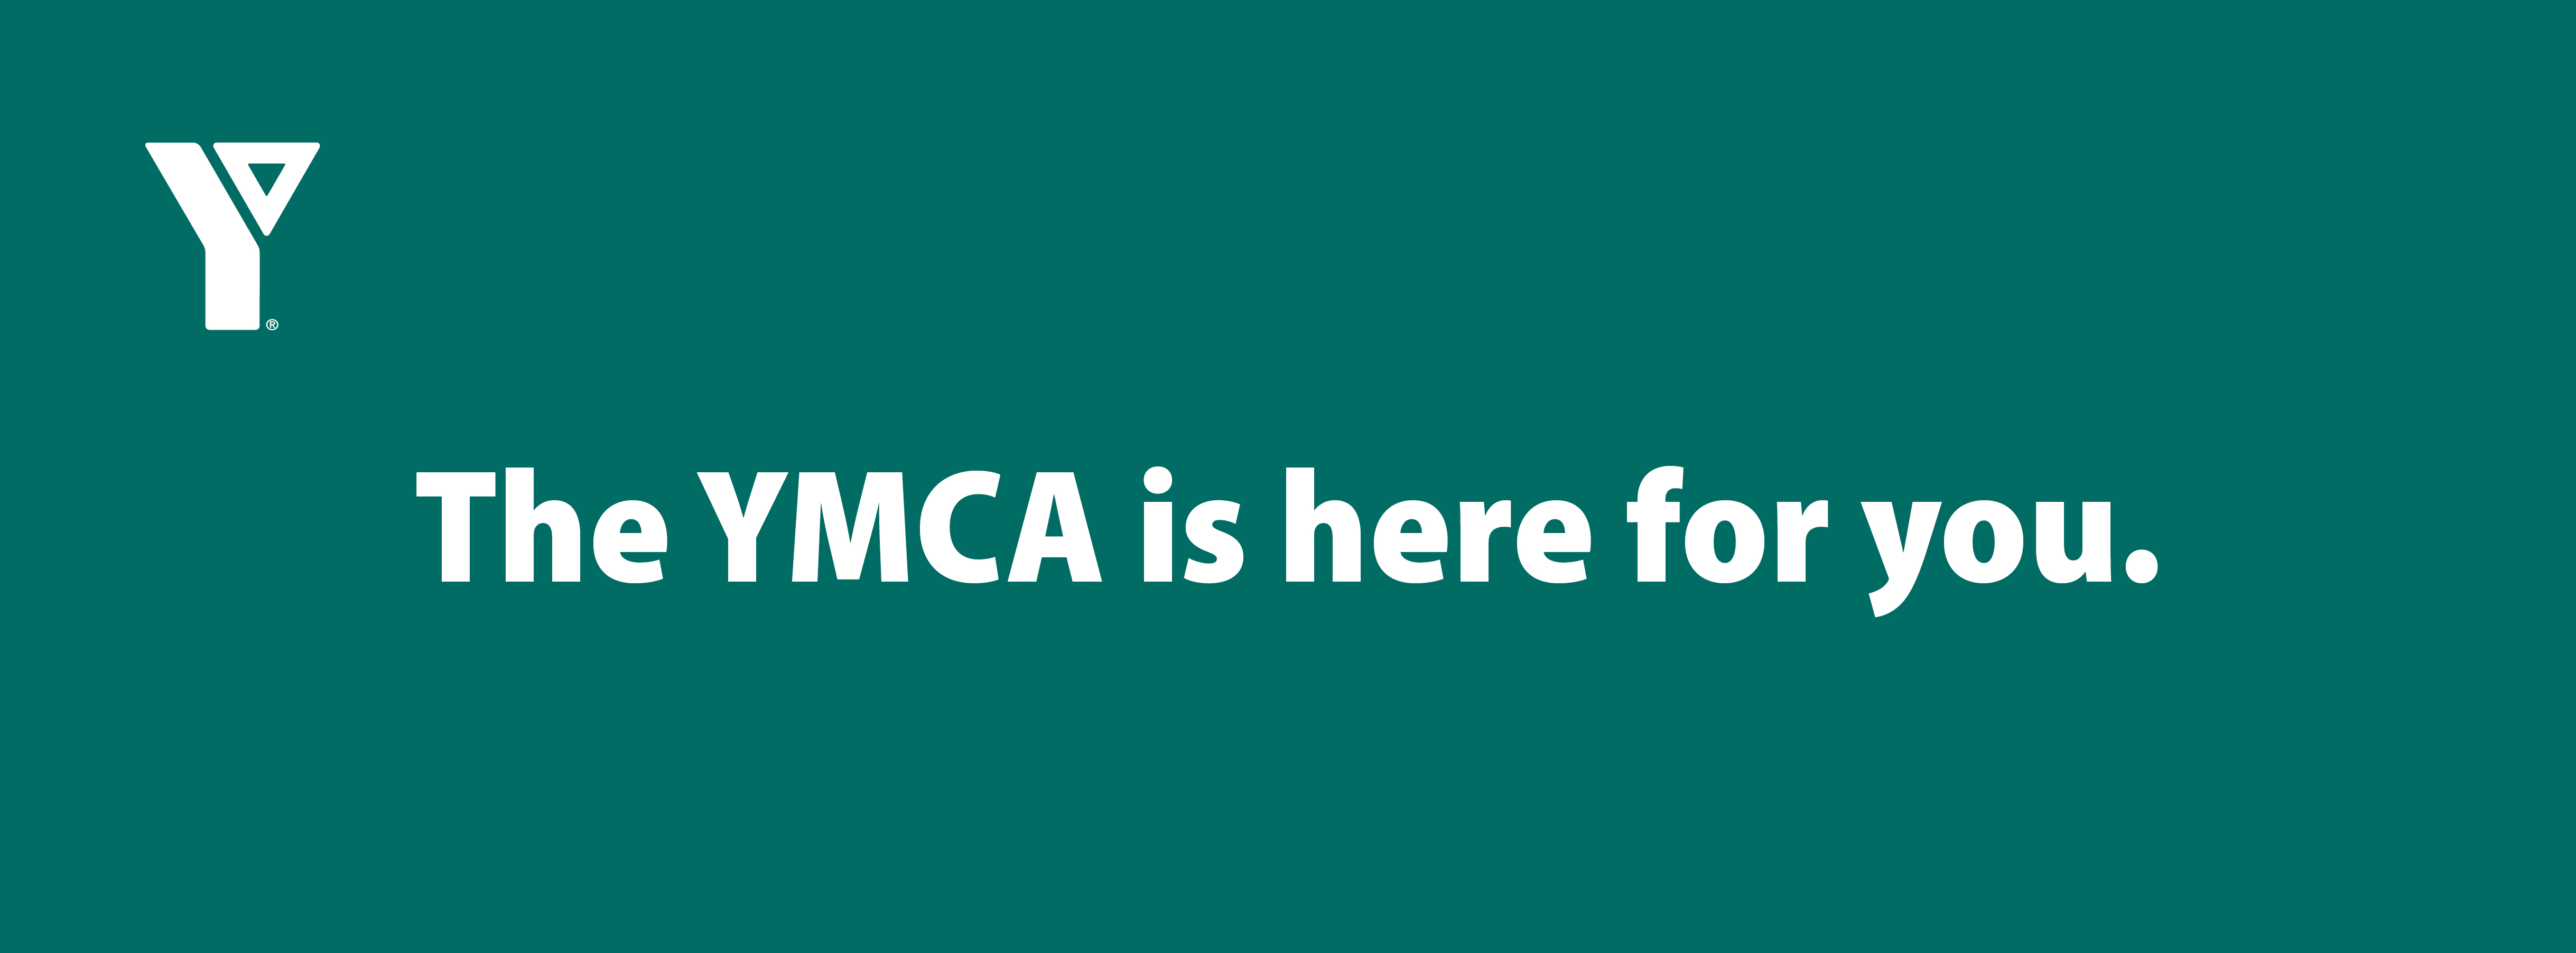 The YMCA is here for you.